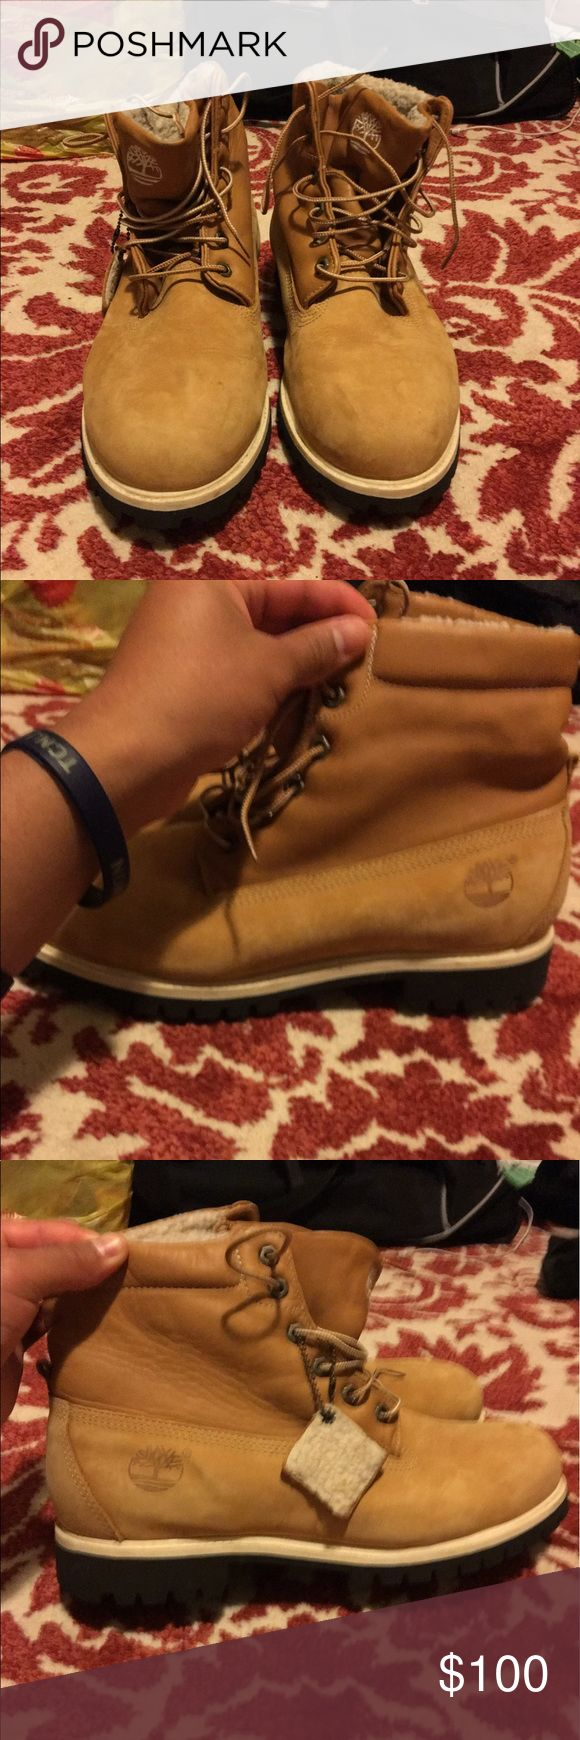 NWOT Timberland men's boots Never used. New. Make me an offer! Timberland Shoes Boots